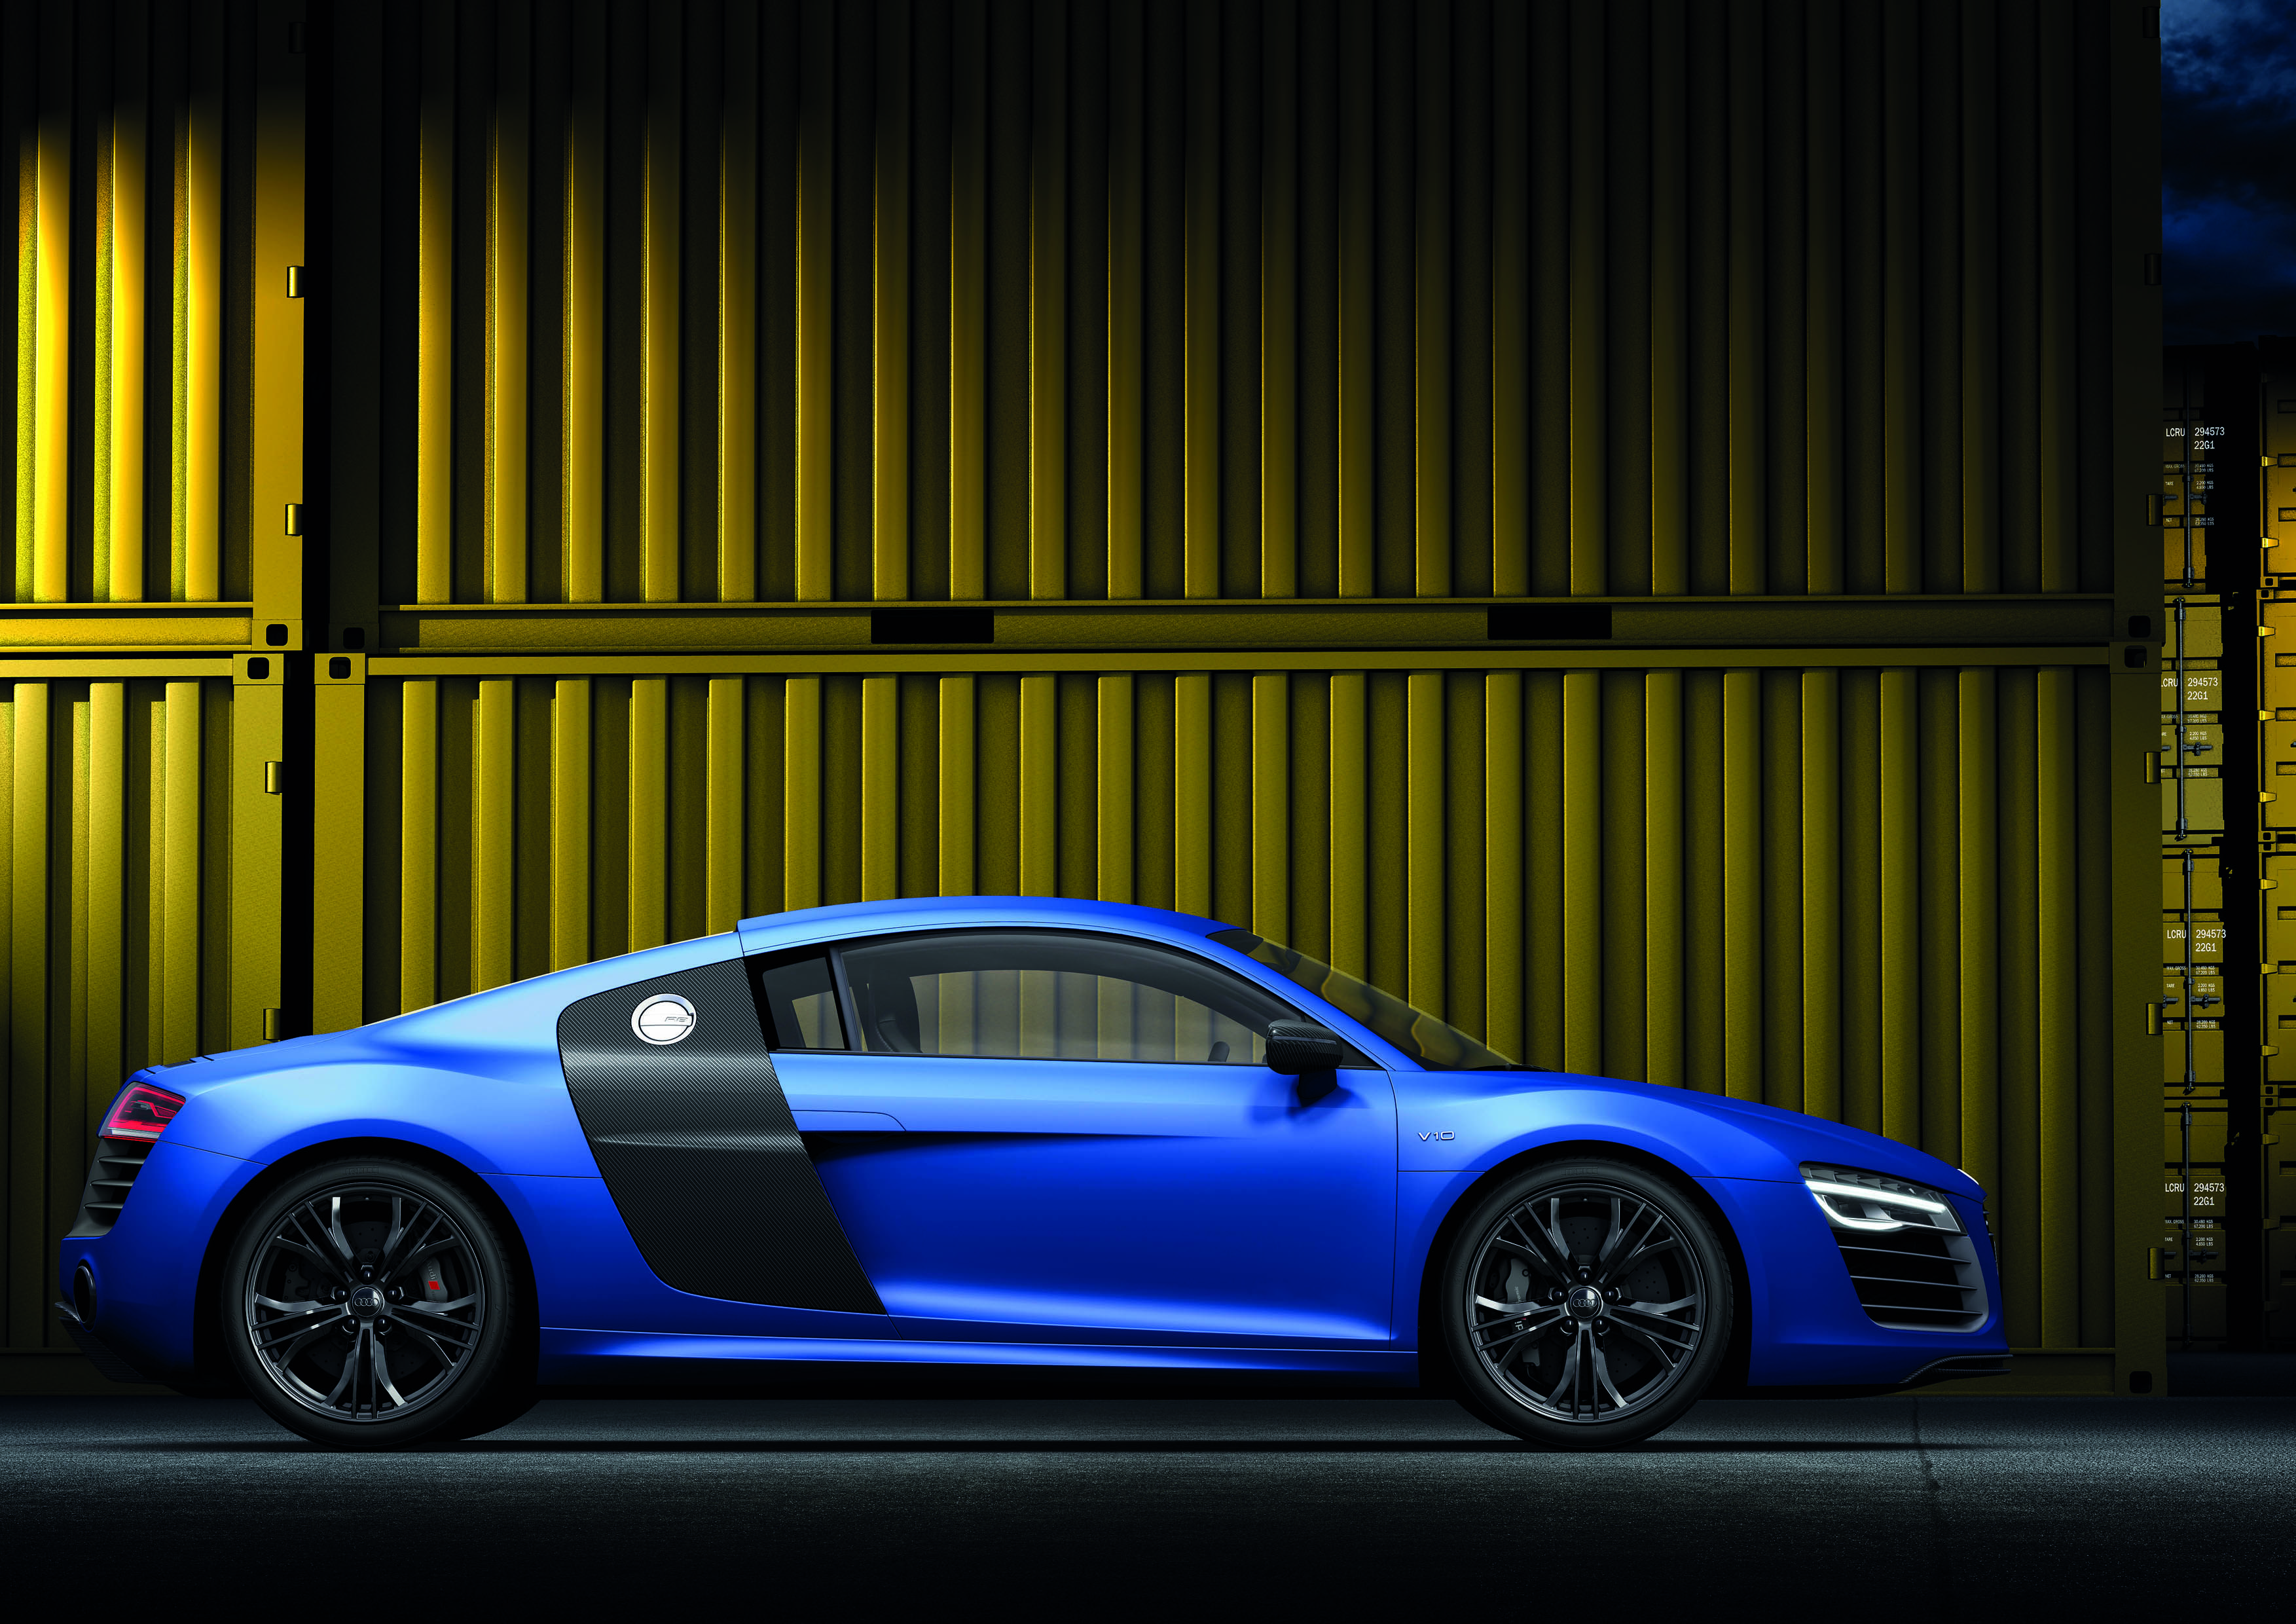 audi r8 v10 plus i want this anything that i can go fast and do stupid stuff in pinterest. Black Bedroom Furniture Sets. Home Design Ideas